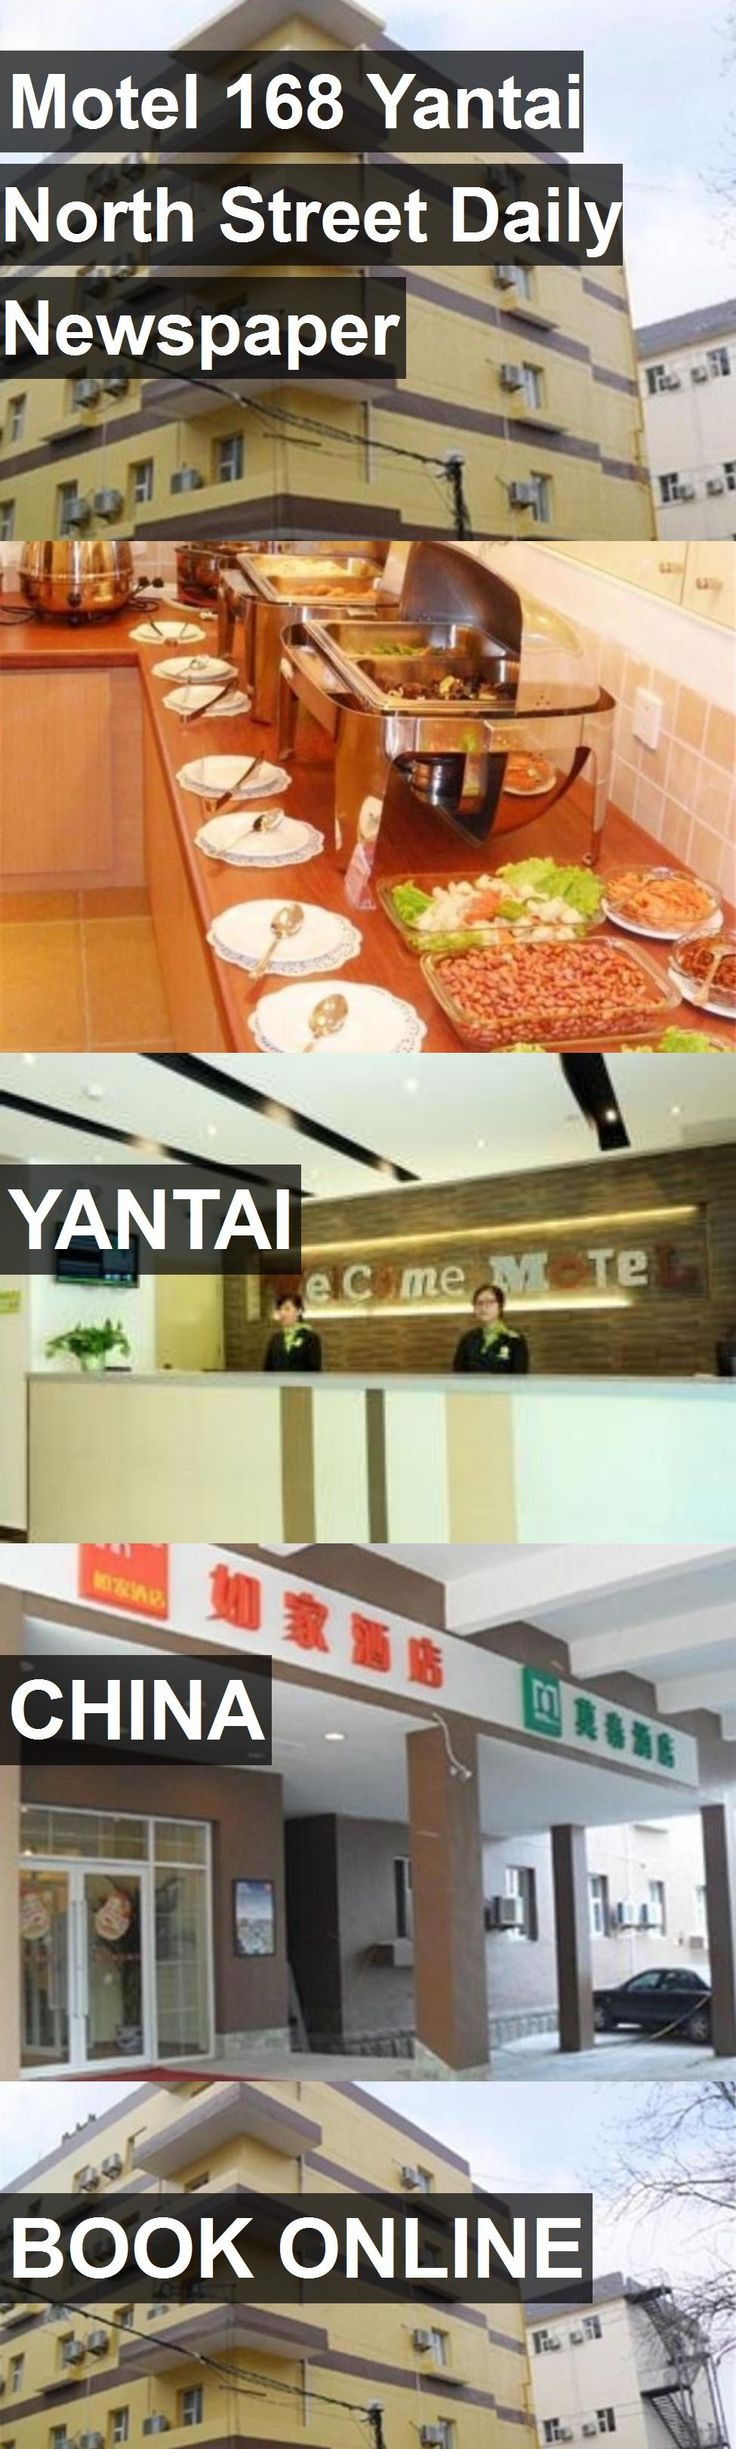 Hotel Motel 168 Yantai North Street Daily Newspaper in Yantai, China. For more information, photos, reviews and best prices please follow the link. #China #Yantai #travel #vacation #hotel